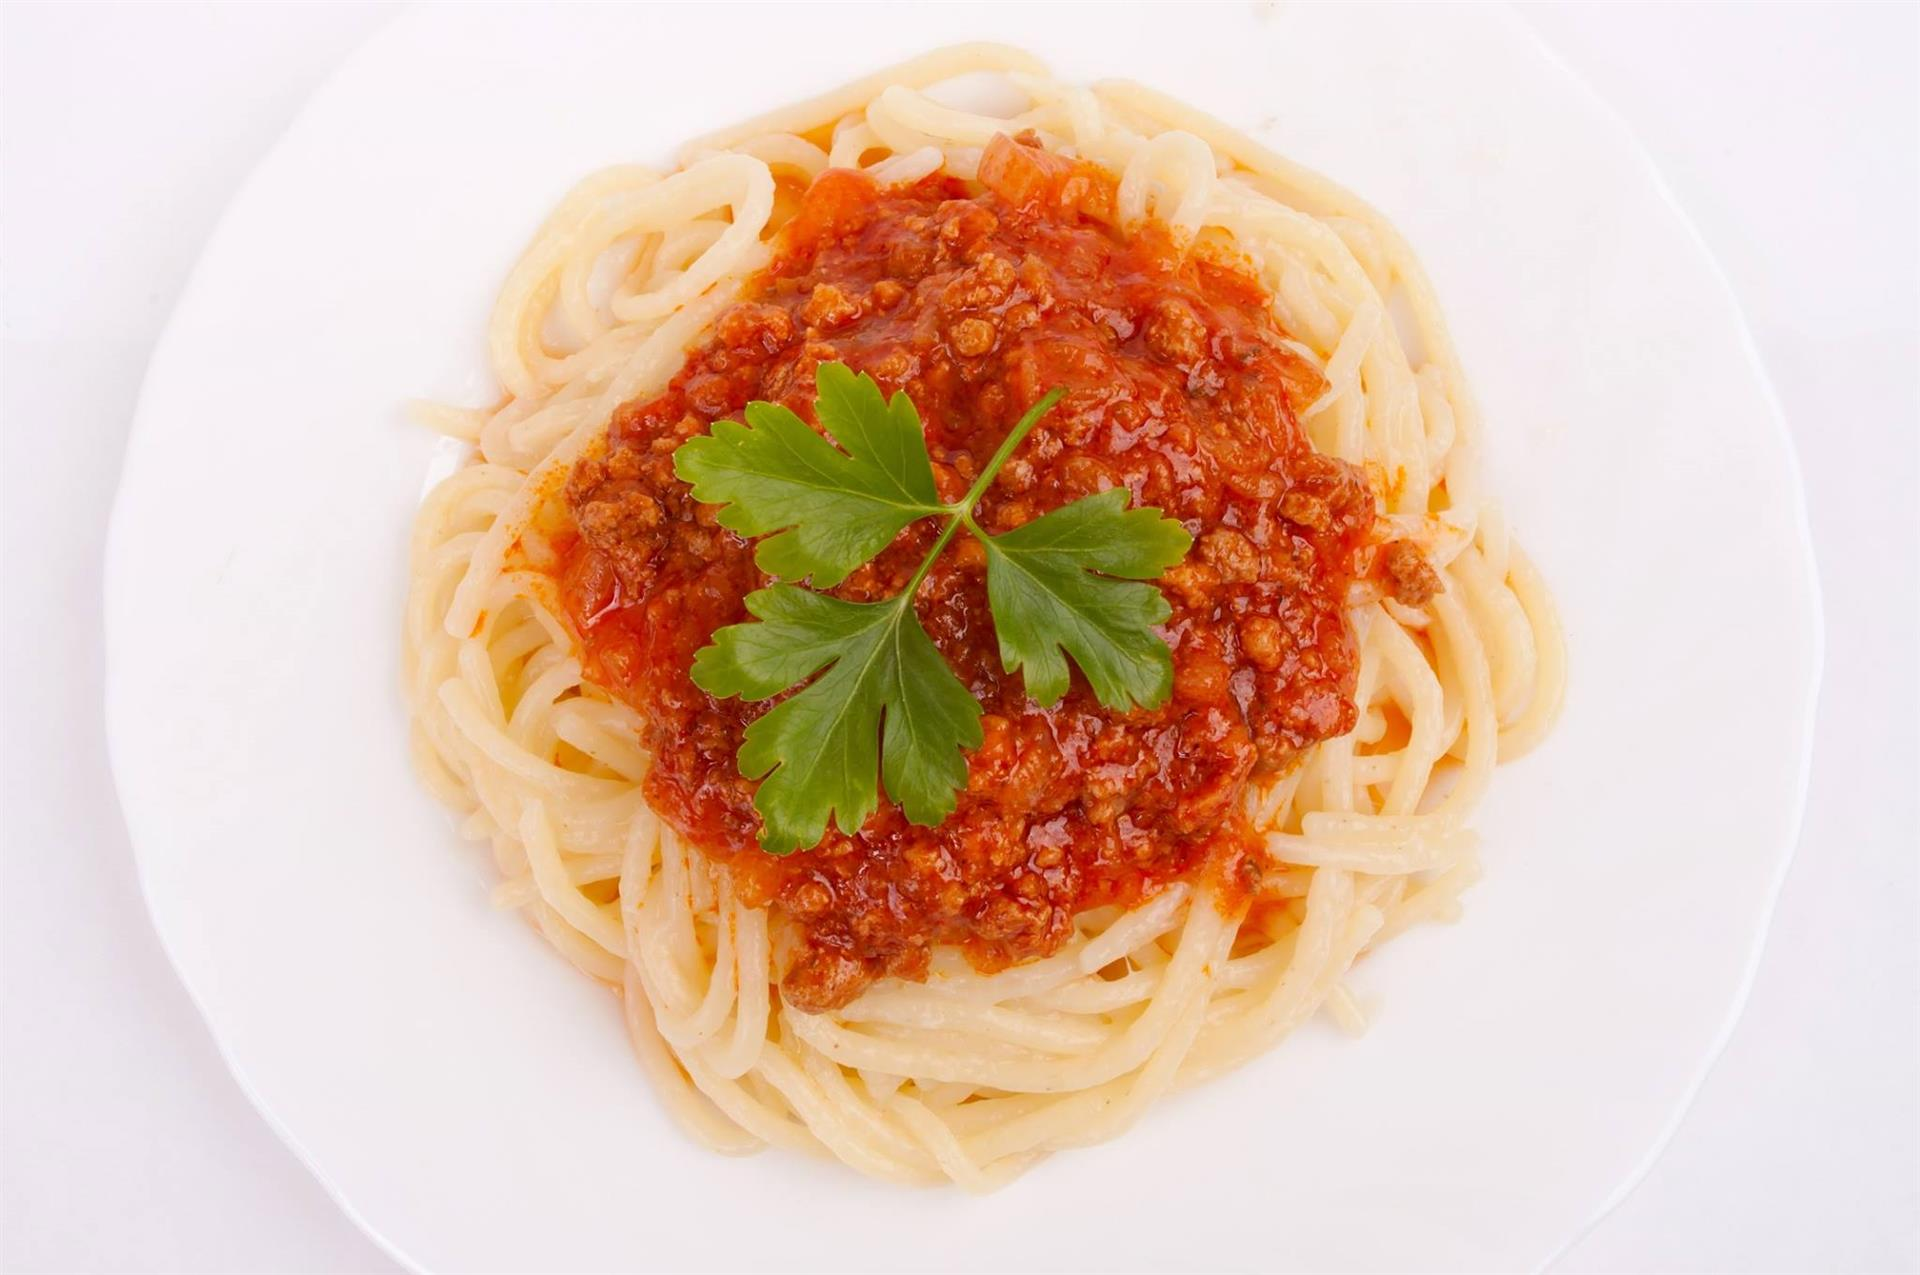 Spaghetti with tomato sauce in a bowl